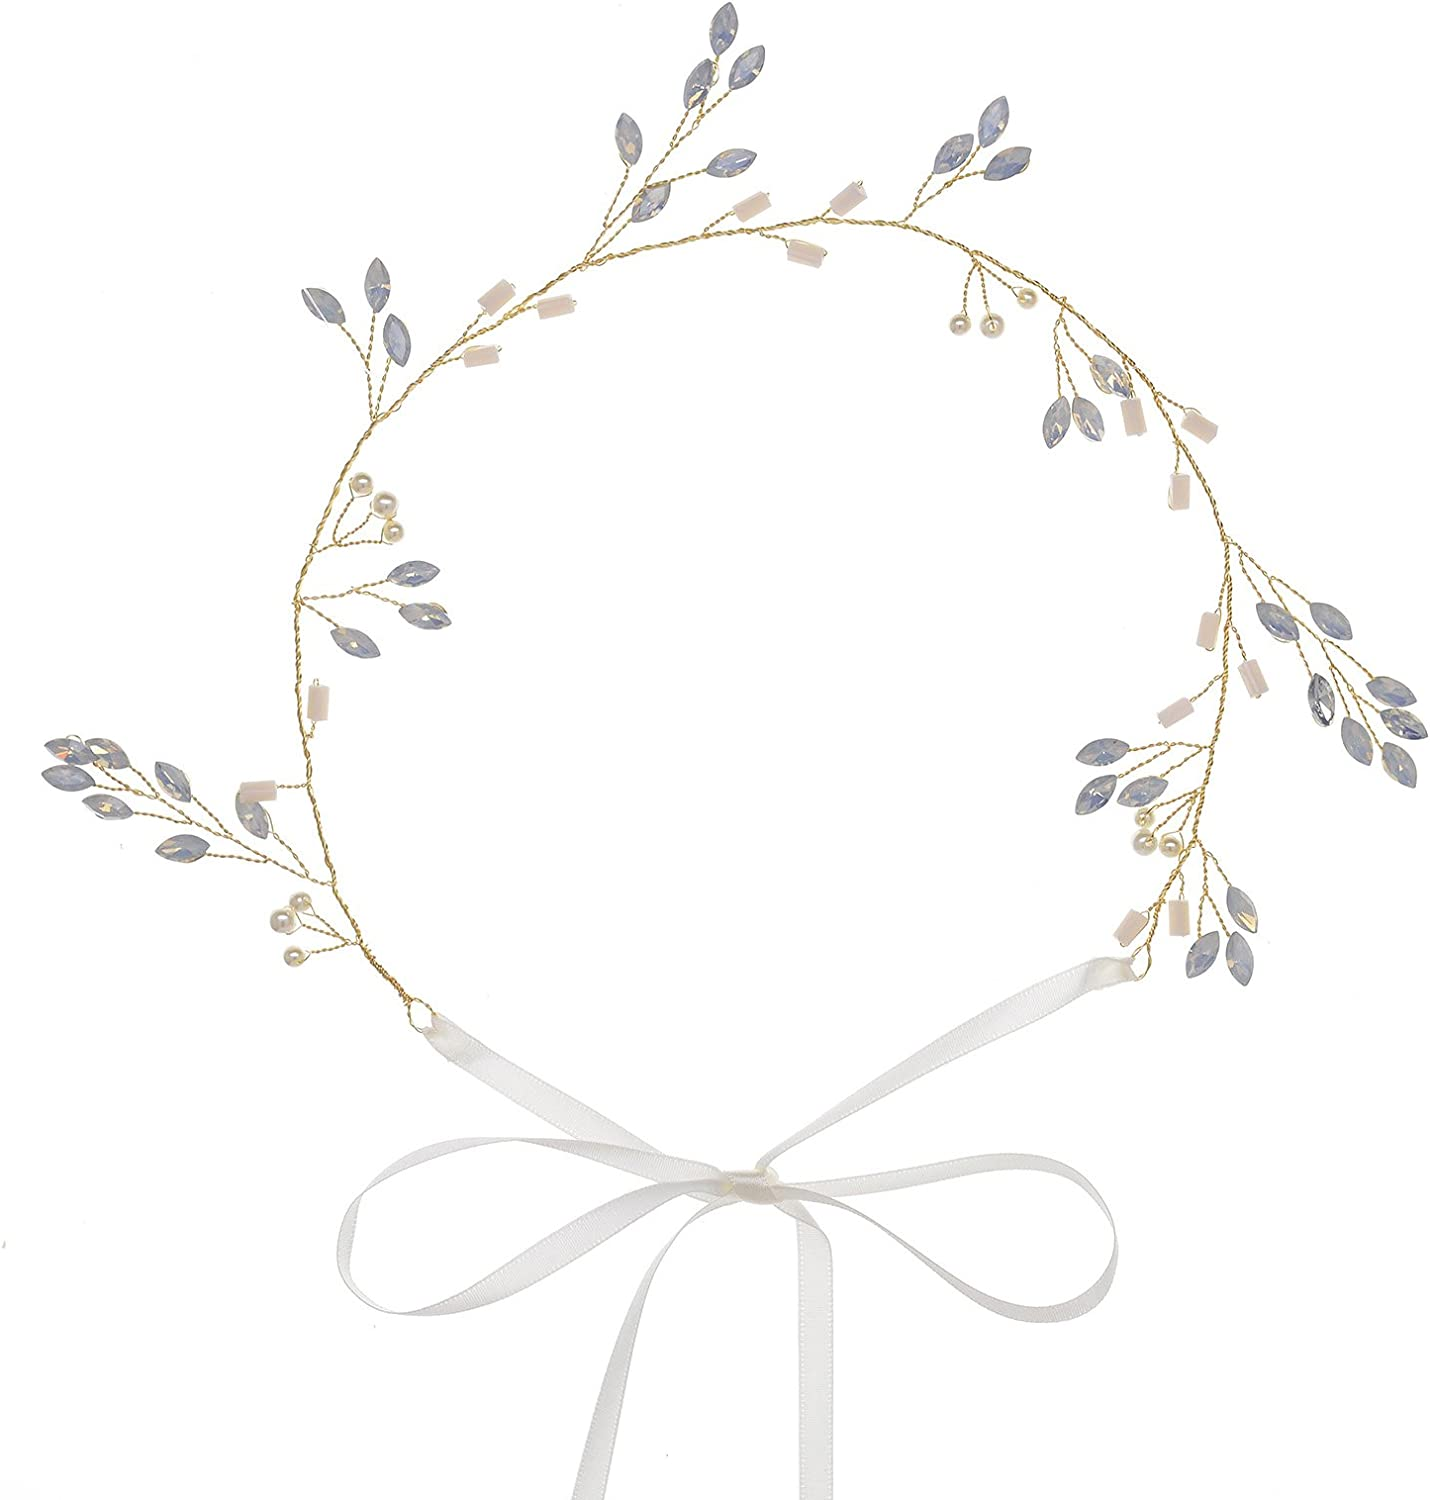 Remedios Crystal Headpiece Jewelry Branch and leaf Bridal Headpieces Beaded Hair Wreath for Women Styling